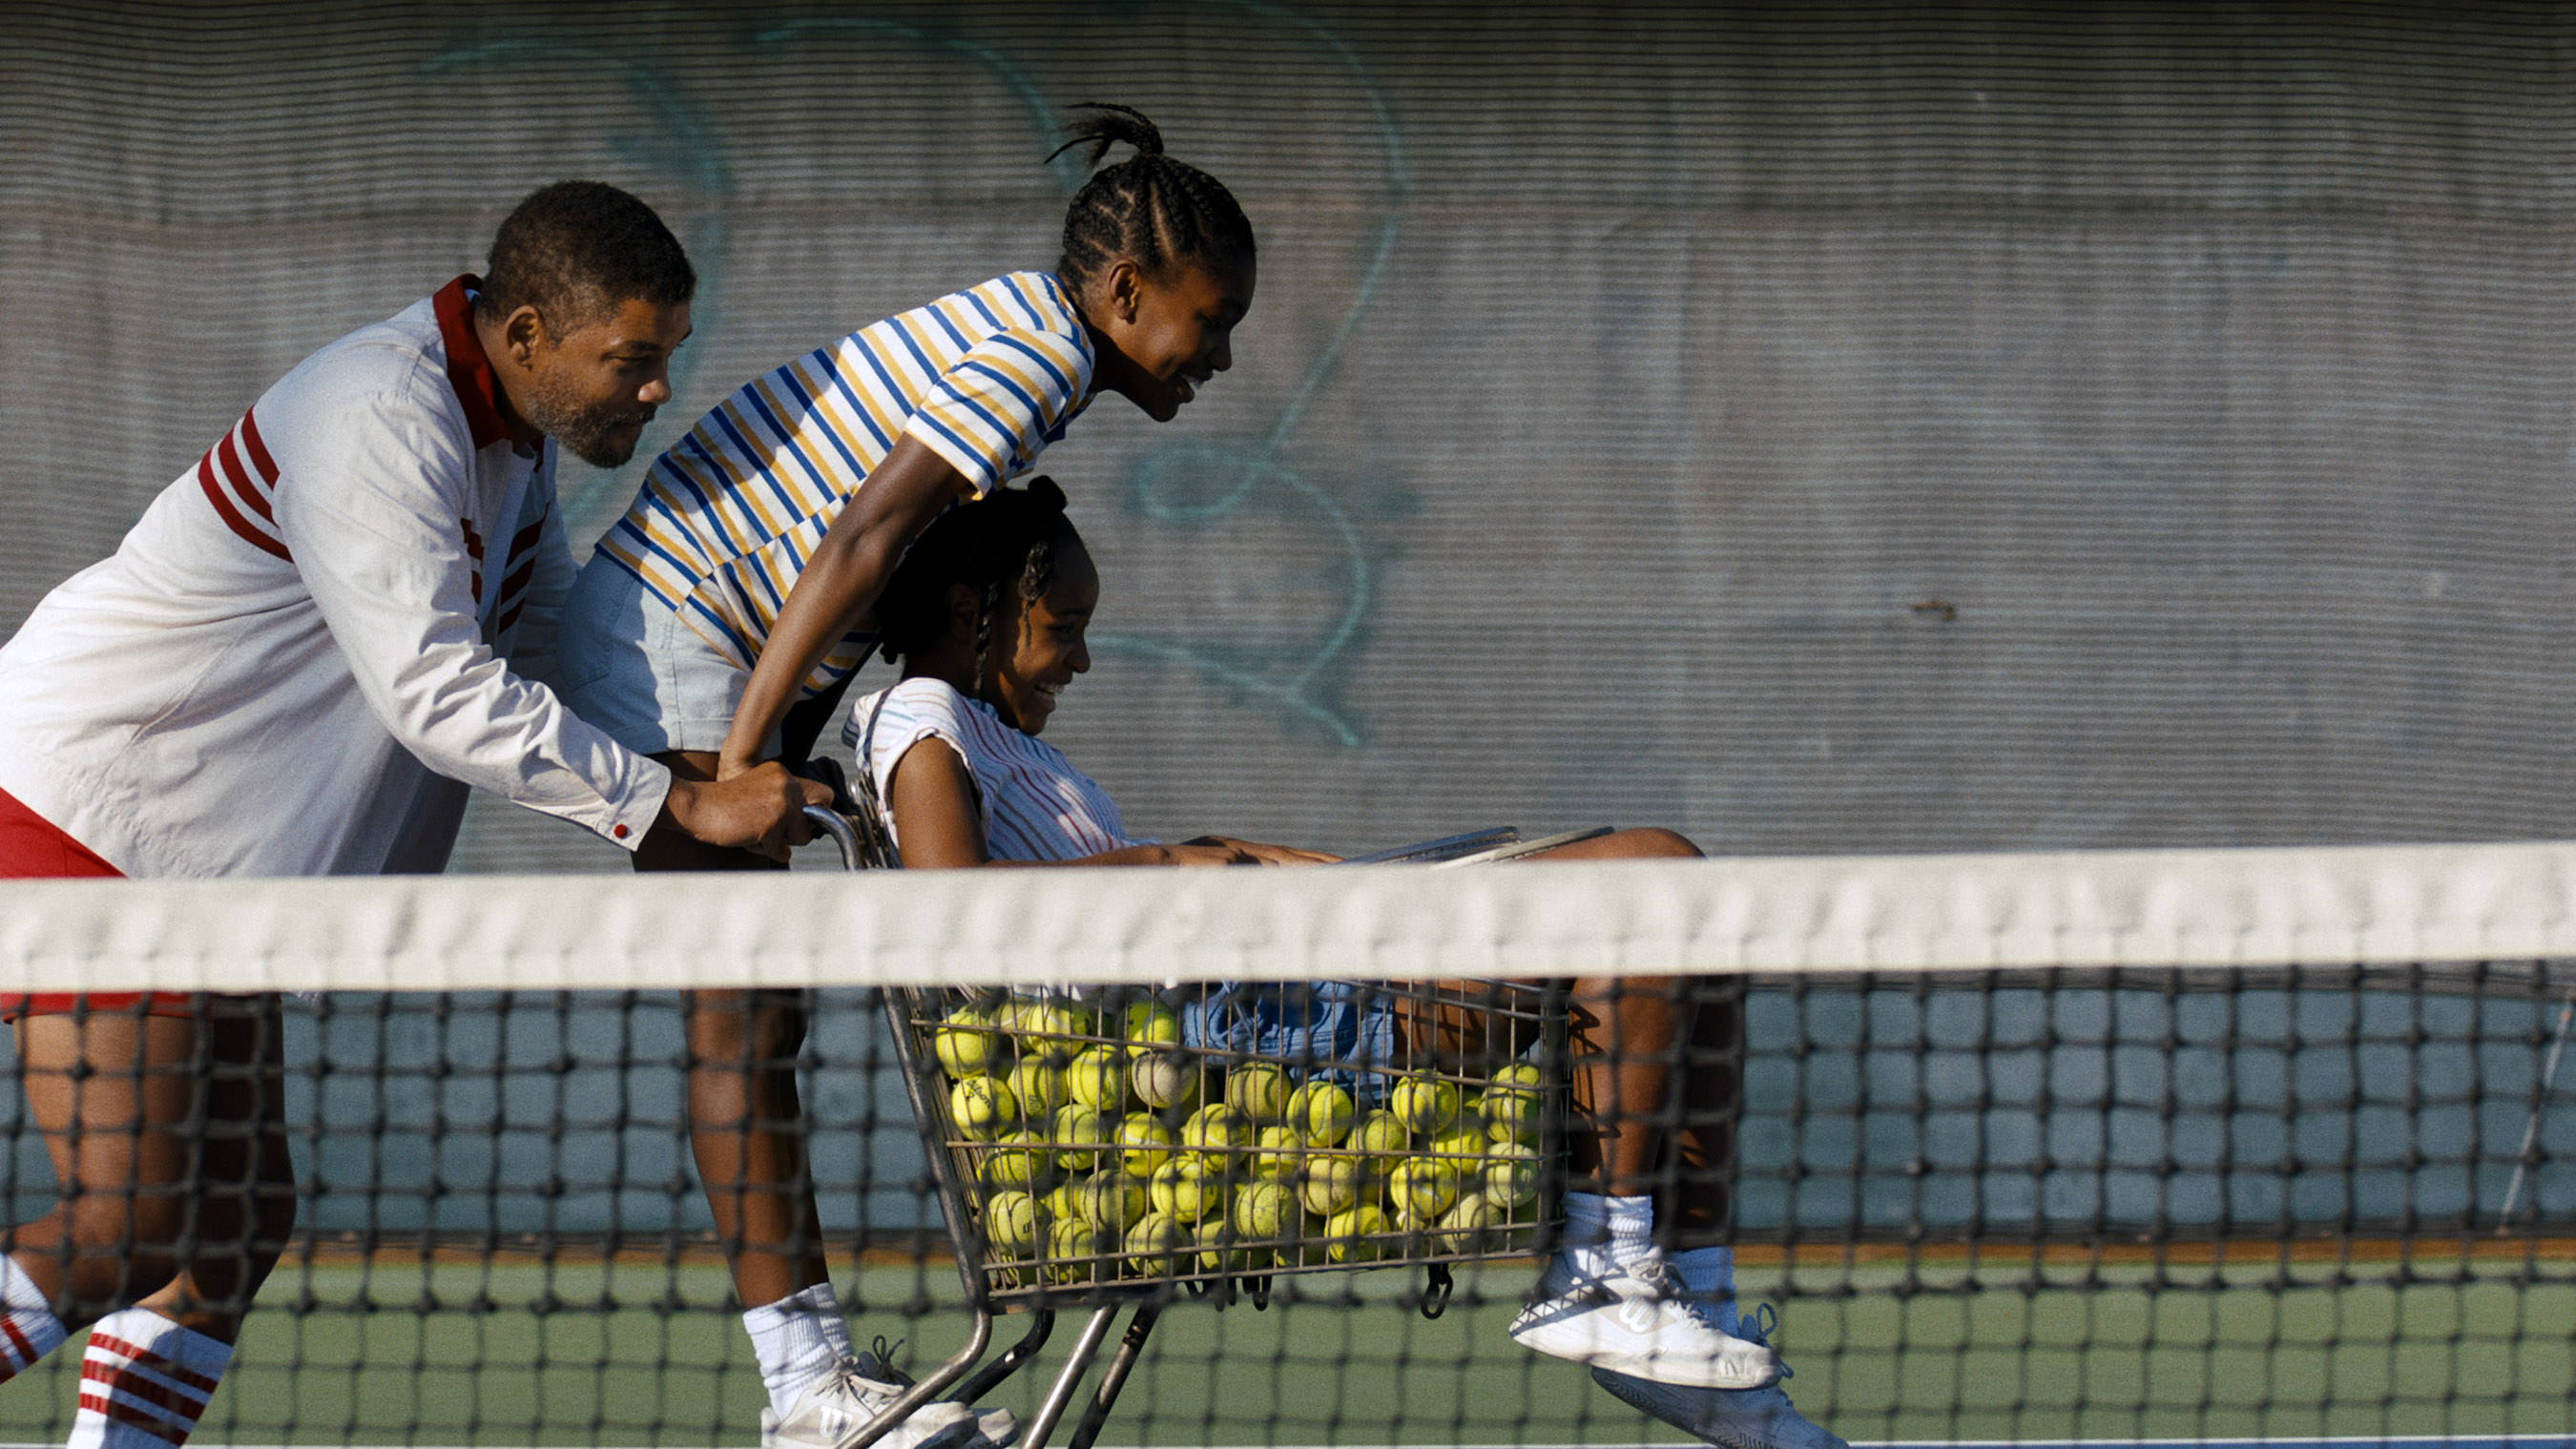 Richard pushing his daughters as they hang on to a shopping cart filled with tennis balls in a scene from the film